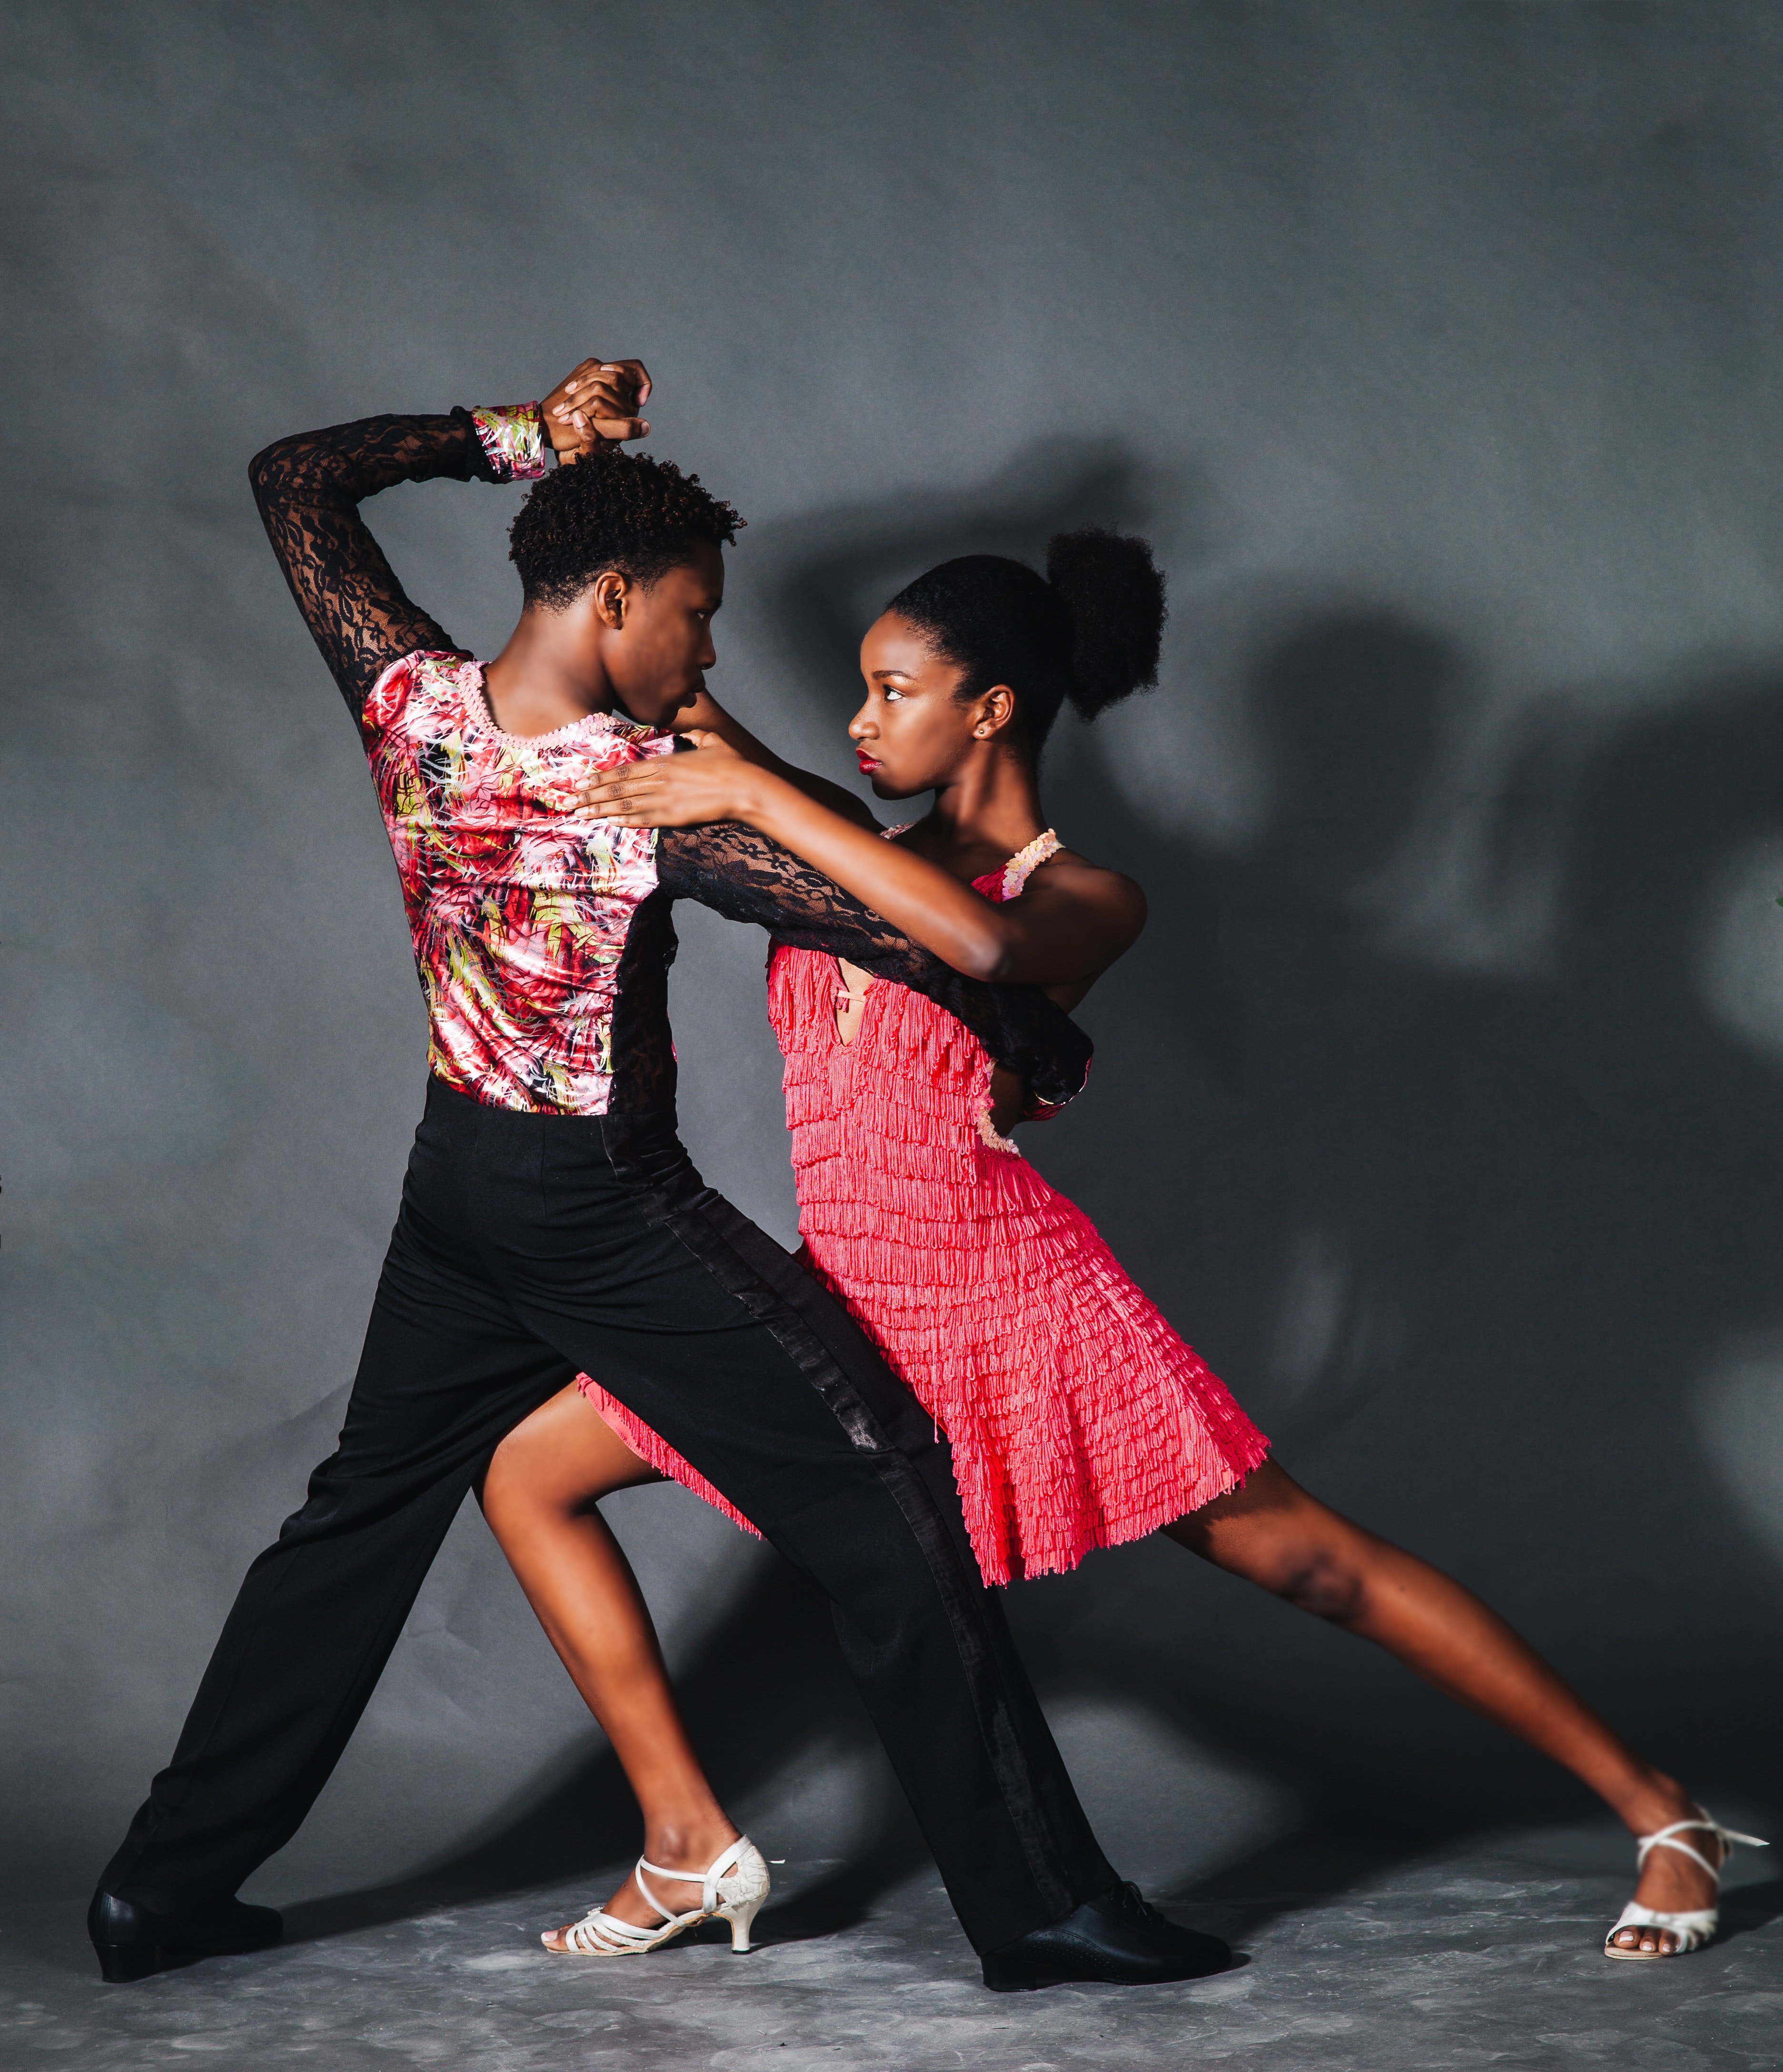 Couple Dancing Pictures Download Free Images Stock Photos On Unsplash